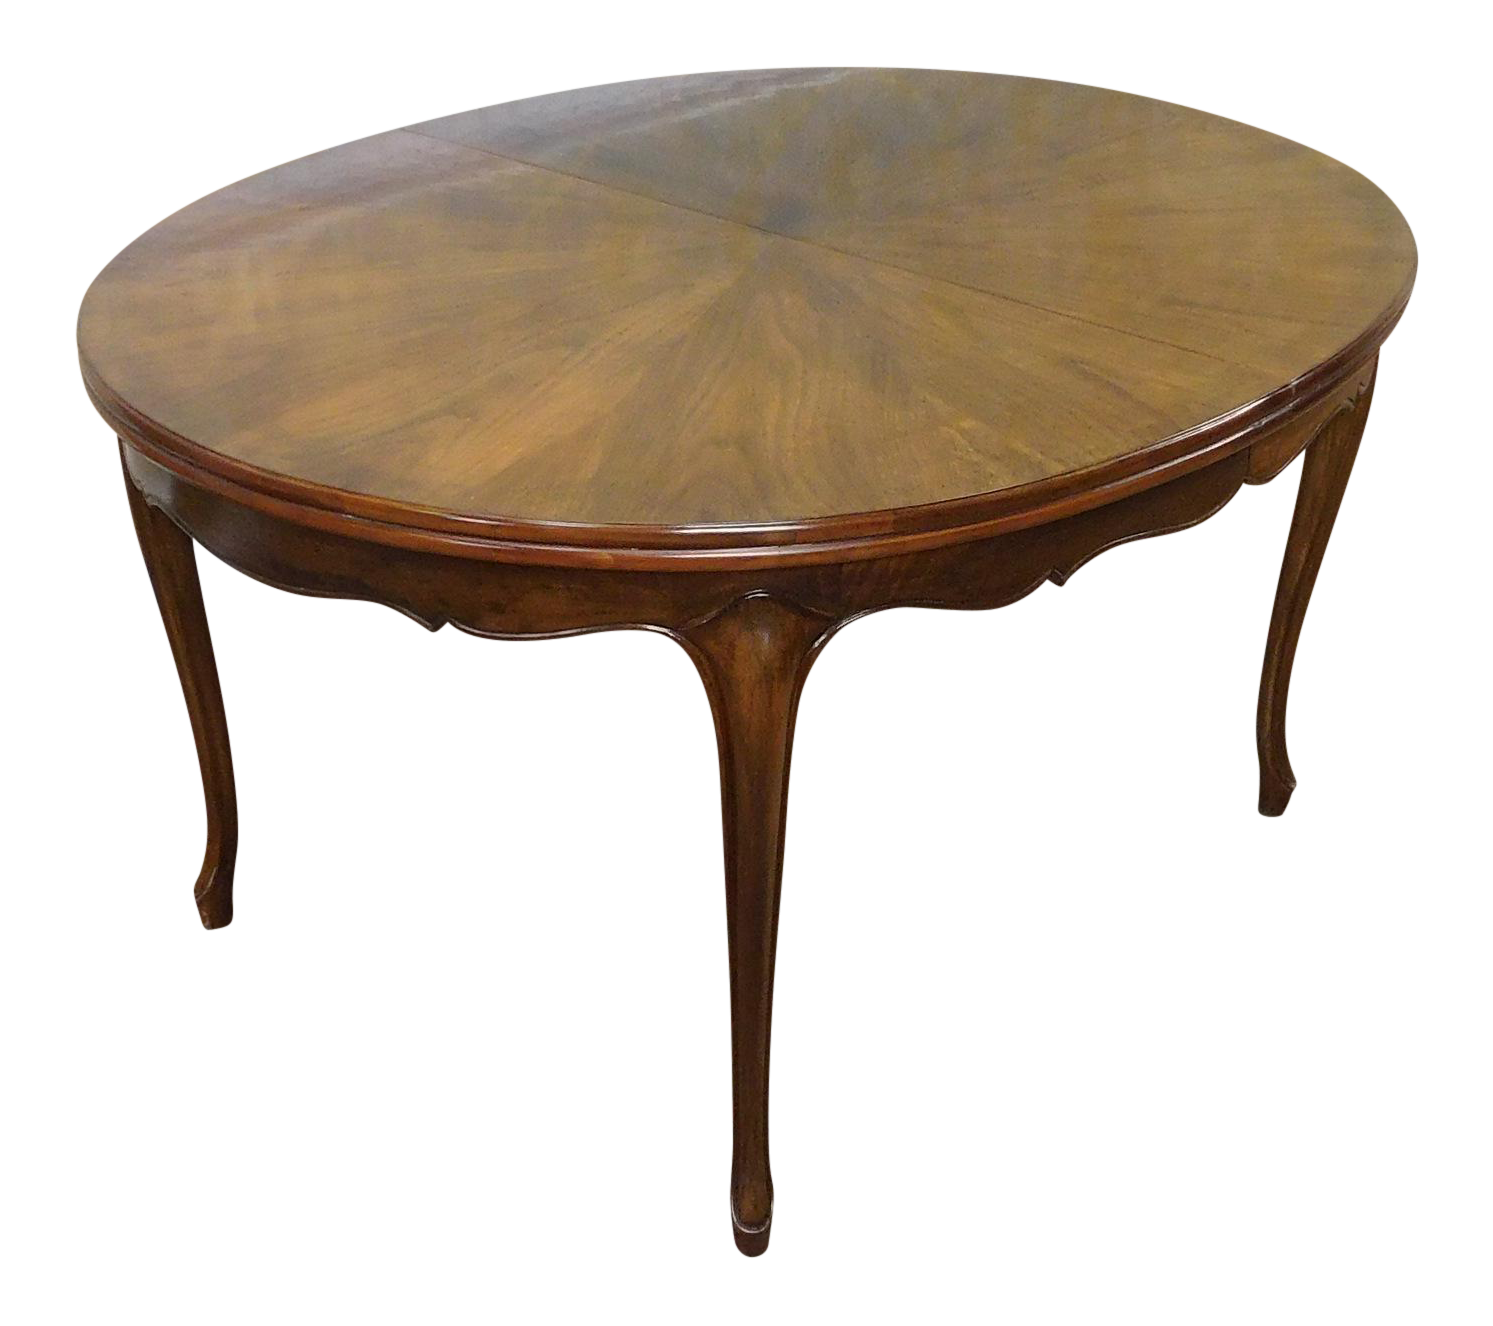 Fruitwood Cherry Oval French Provincial Style Baker Furniture Dining Table Chairish